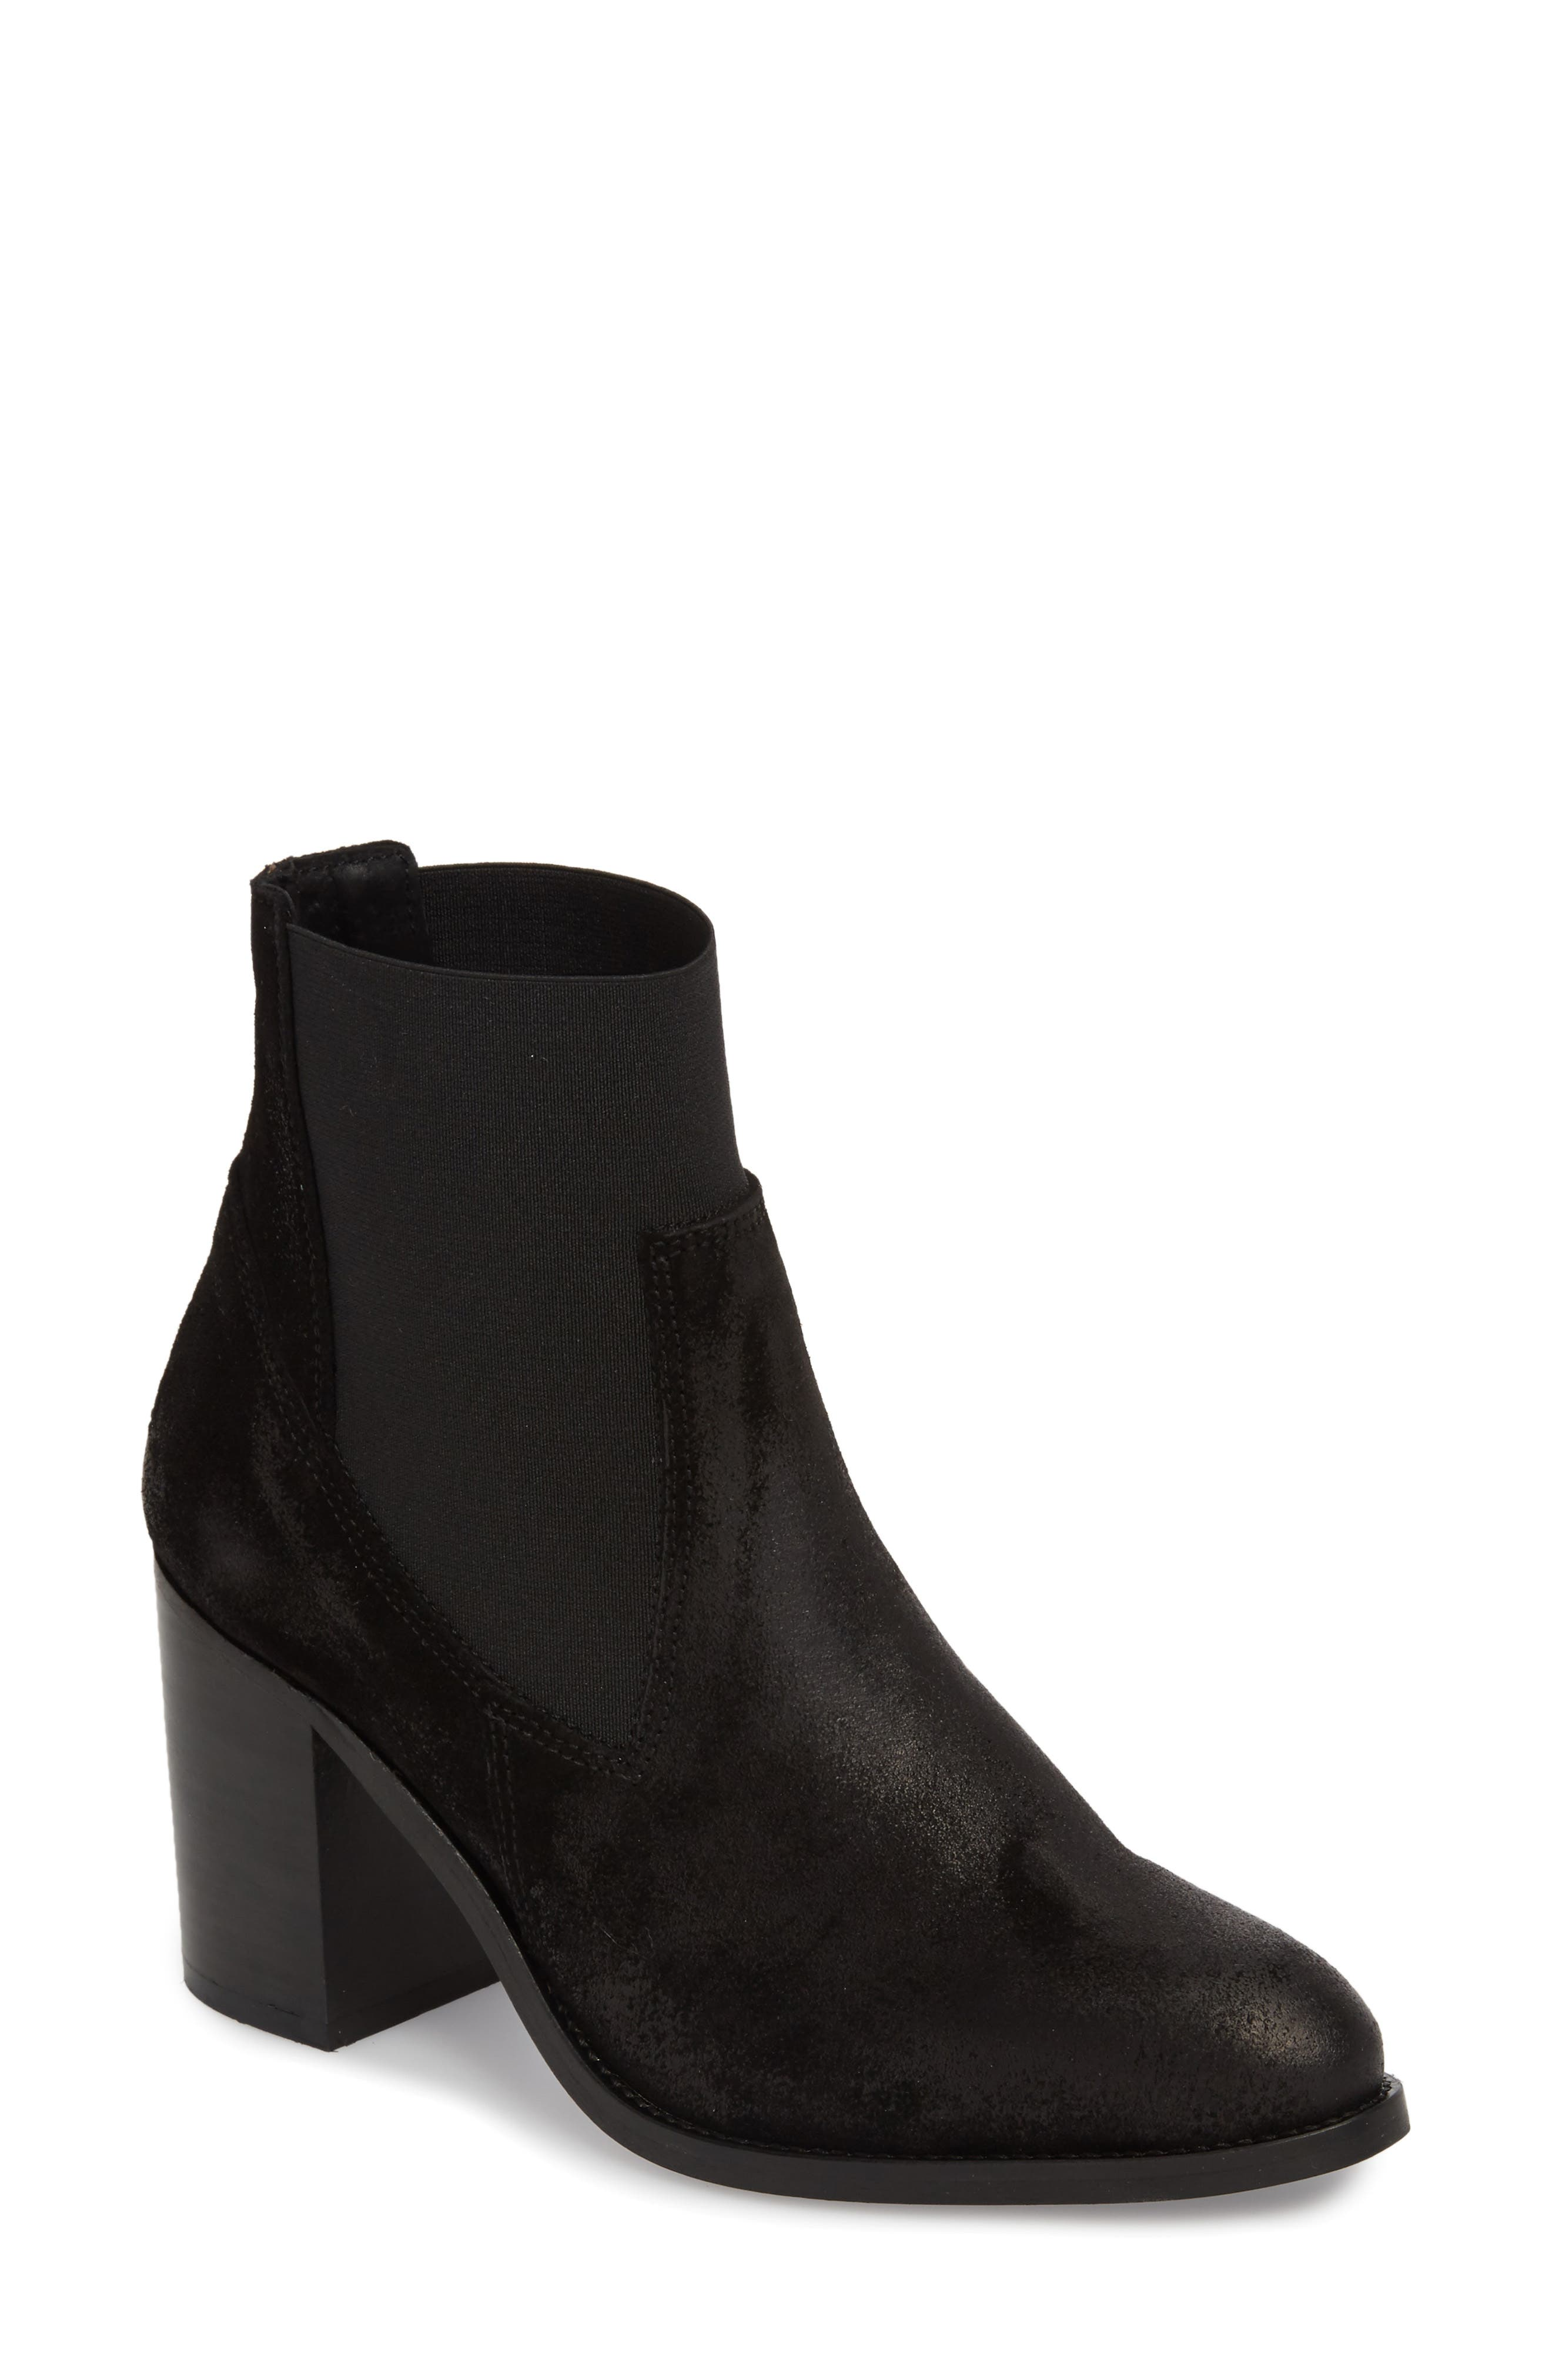 Holland Bootie,                         Main,                         color, 006